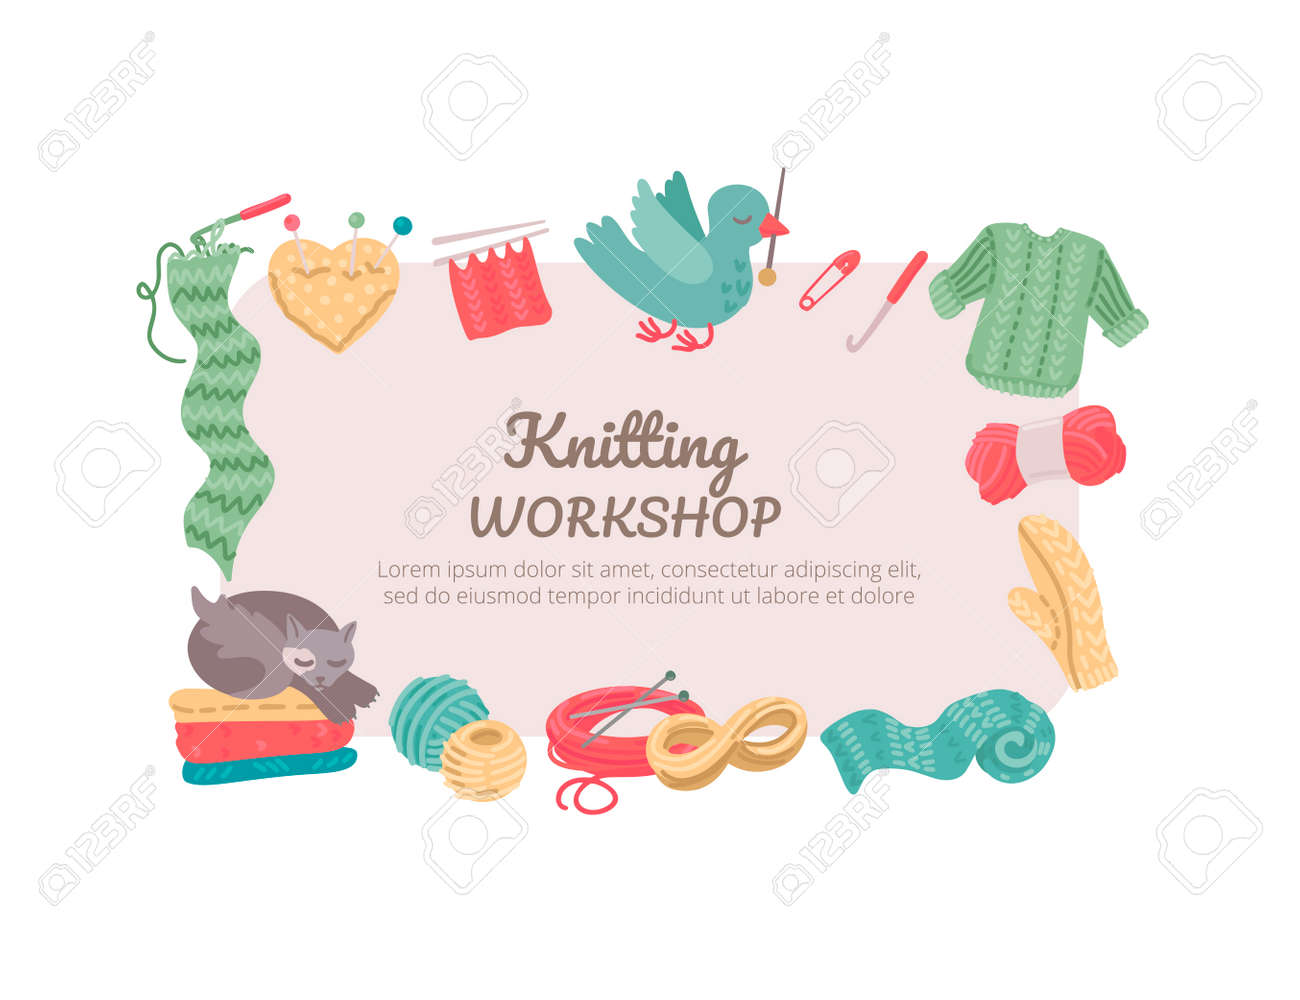 Knitting Workshop Knitting And Crochet Tools Yarn Needles Royalty Free Cliparts Vectors And Stock Illustration Image 142244287